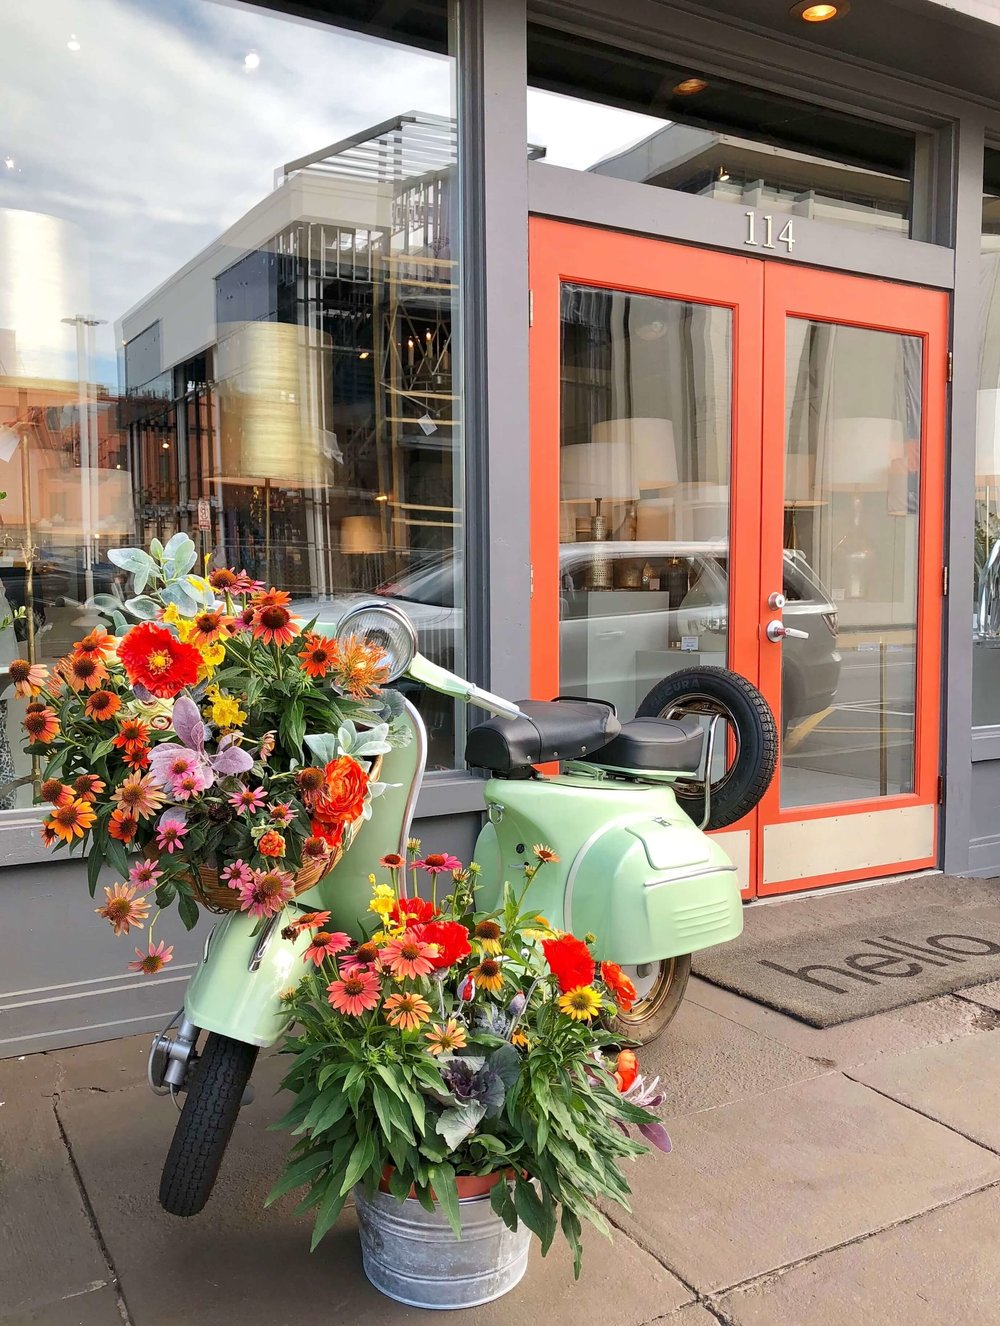 Floral display at the Mr. Brown showroom at Highpoint Market | #floraldisplay #freshflowers #scooter #frontdoor #curbappeal #holidaydecor #storefront